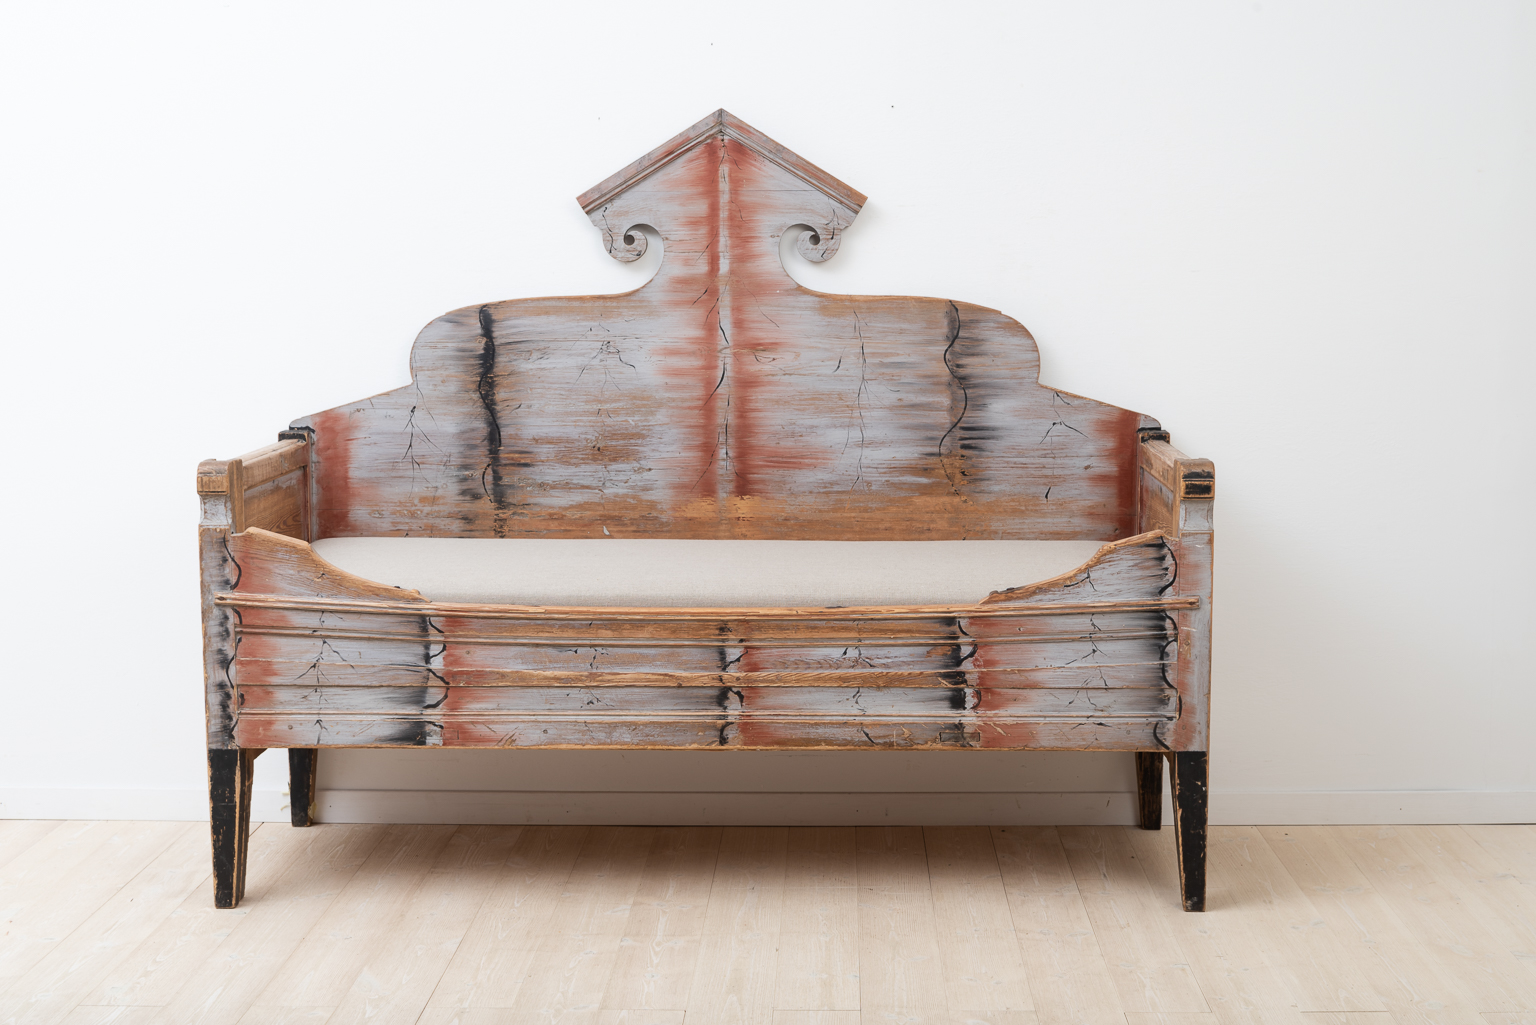 Sofa bed from northern Sweden. Antique compact living.